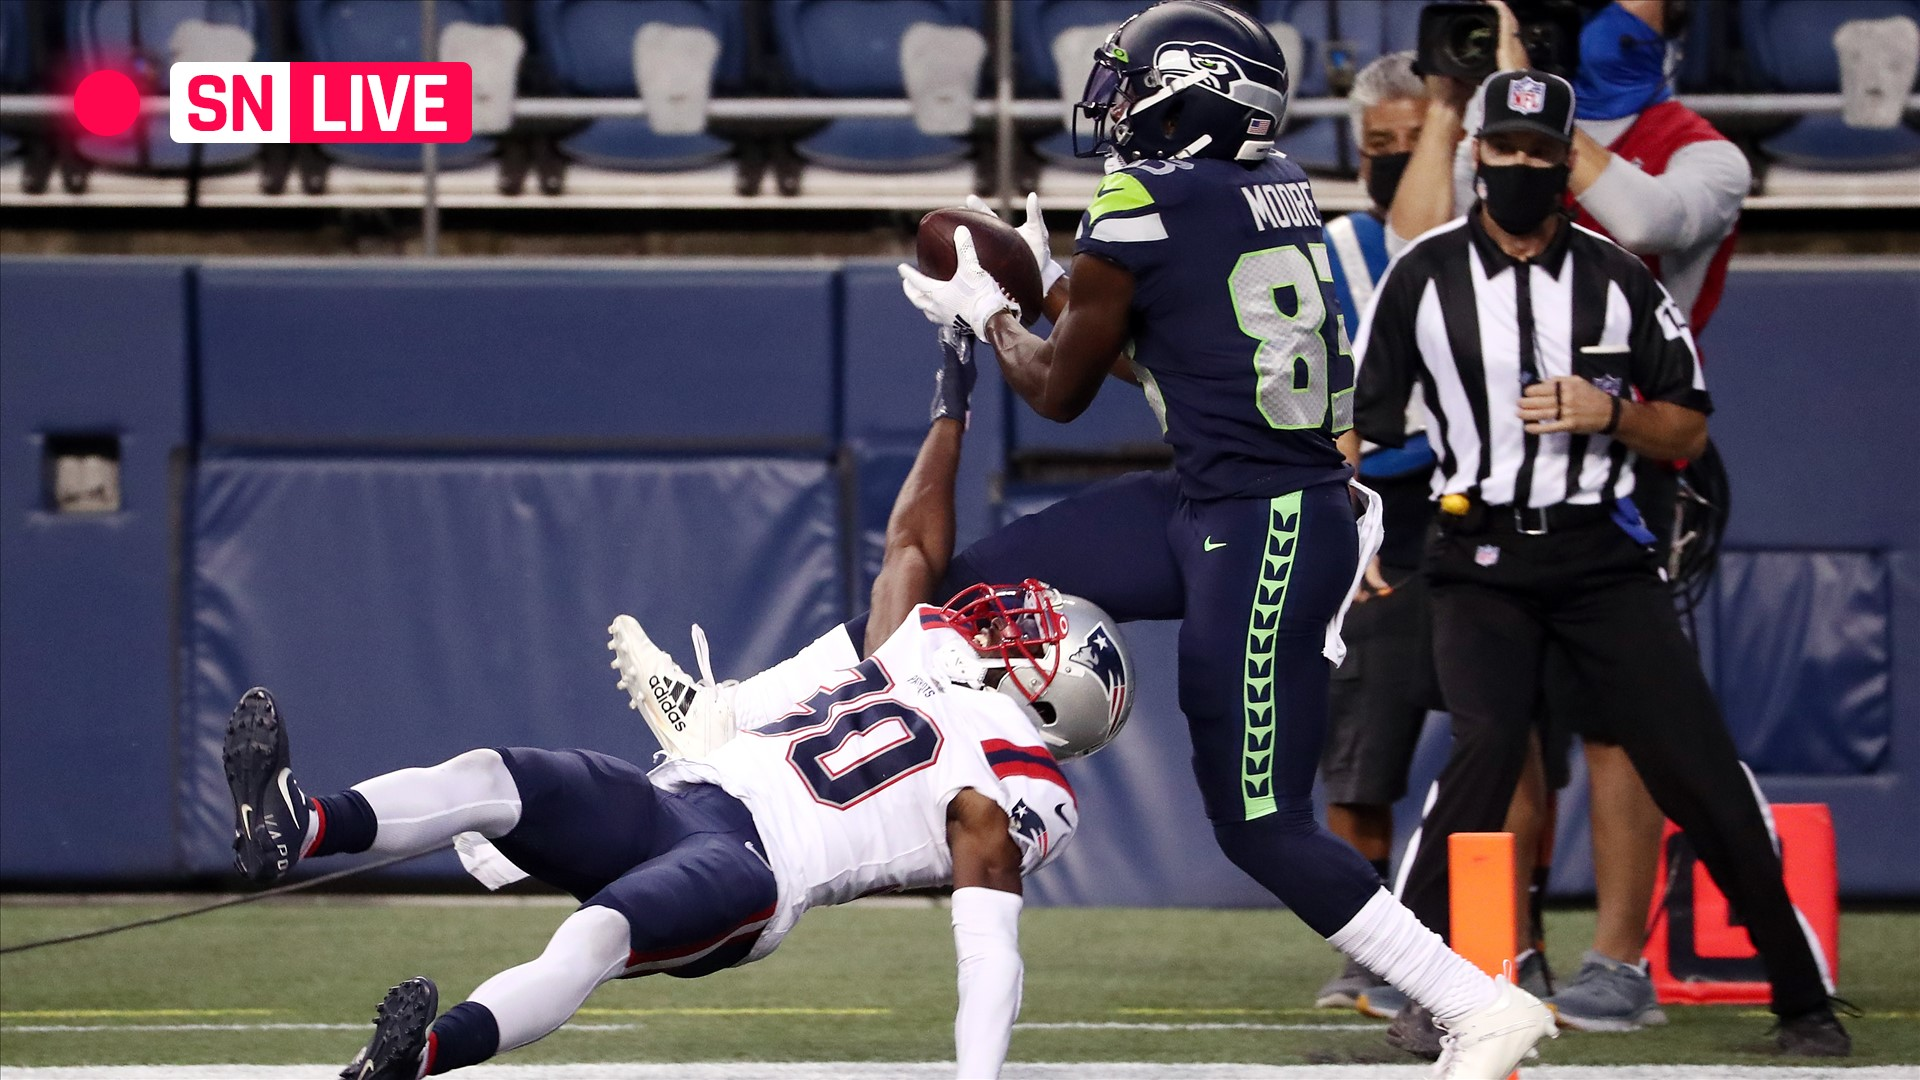 Patriots vs. Seahawks live score, updates, highlights from NFL 'Sunday Night Football' game